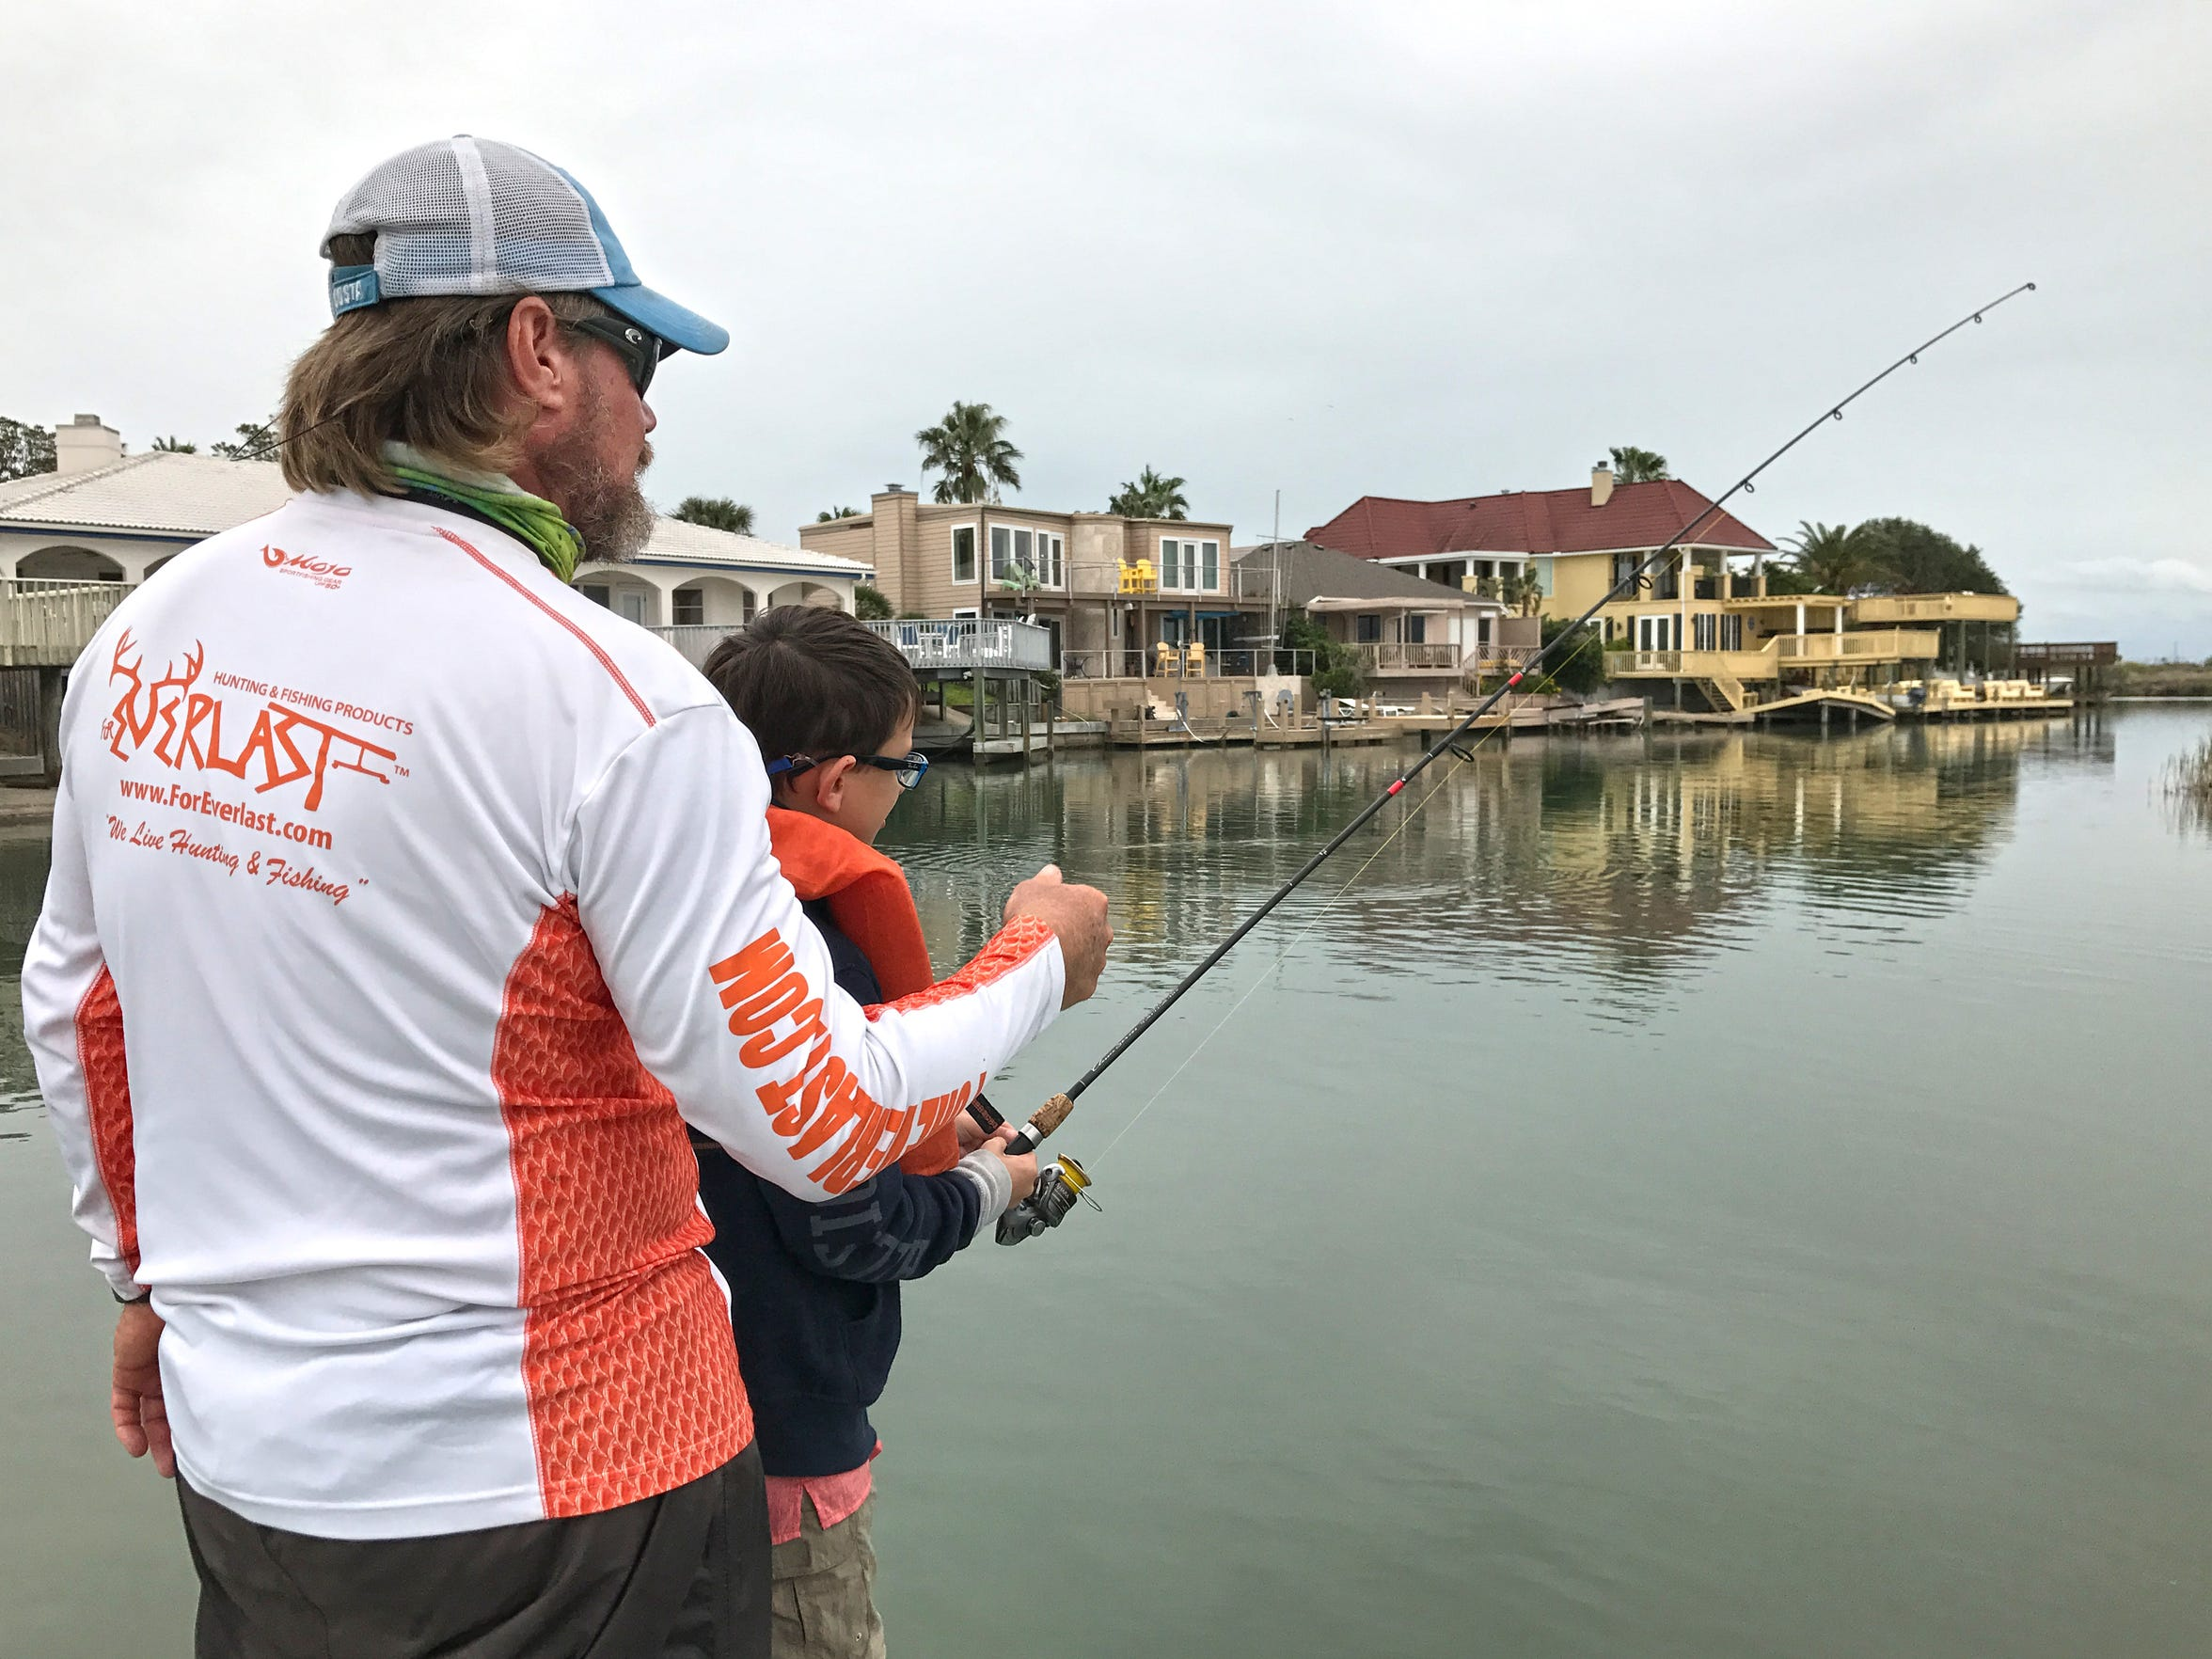 Most family fishing guides know from experience how to maintain a child's interest and focus.